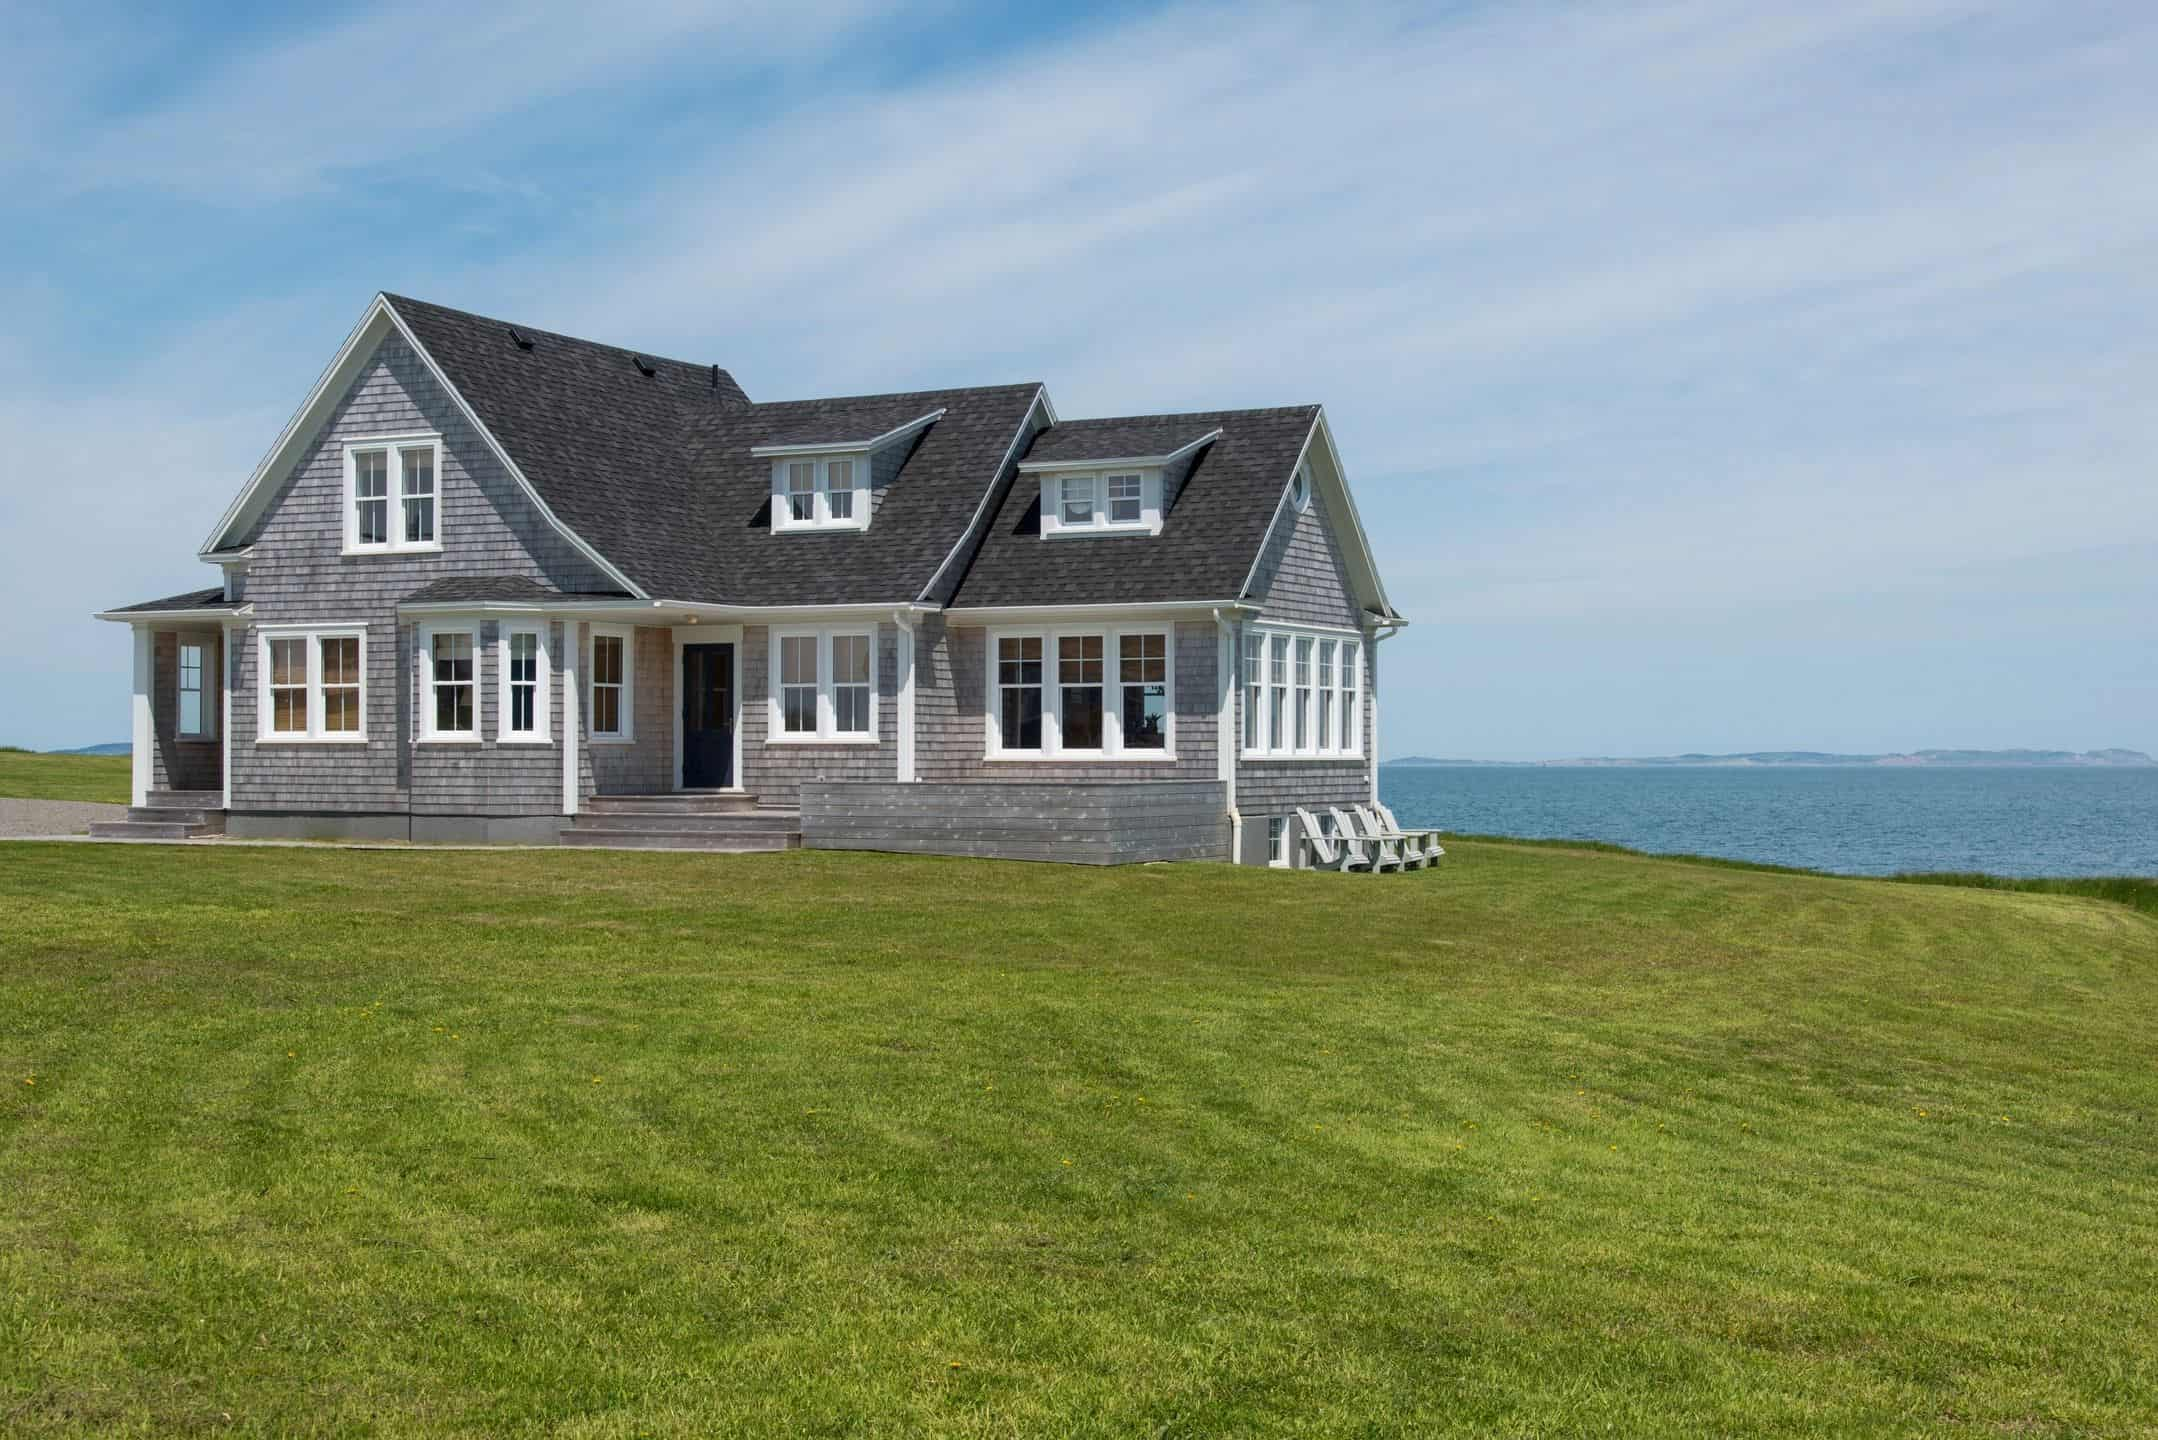 grey two-story house on a grassy lawn by the ocean